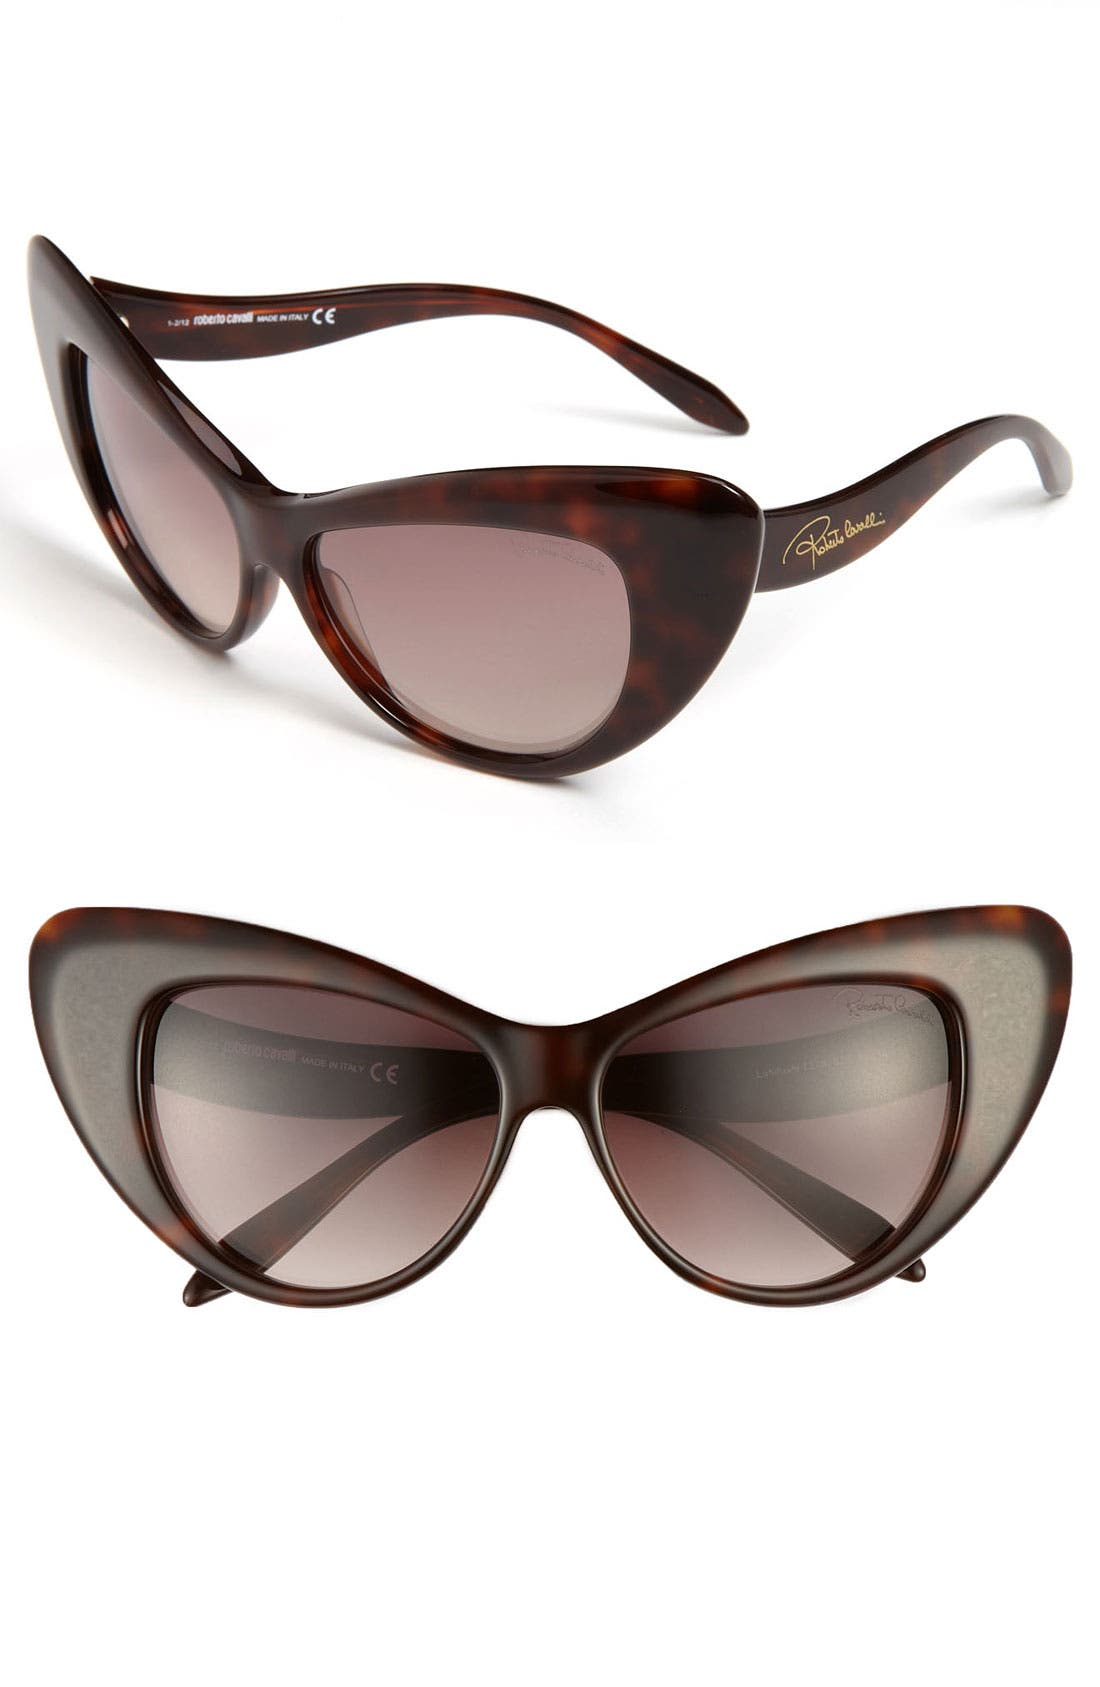 Main Image - Roberto Cavalli 58mm Retro Sunglasses